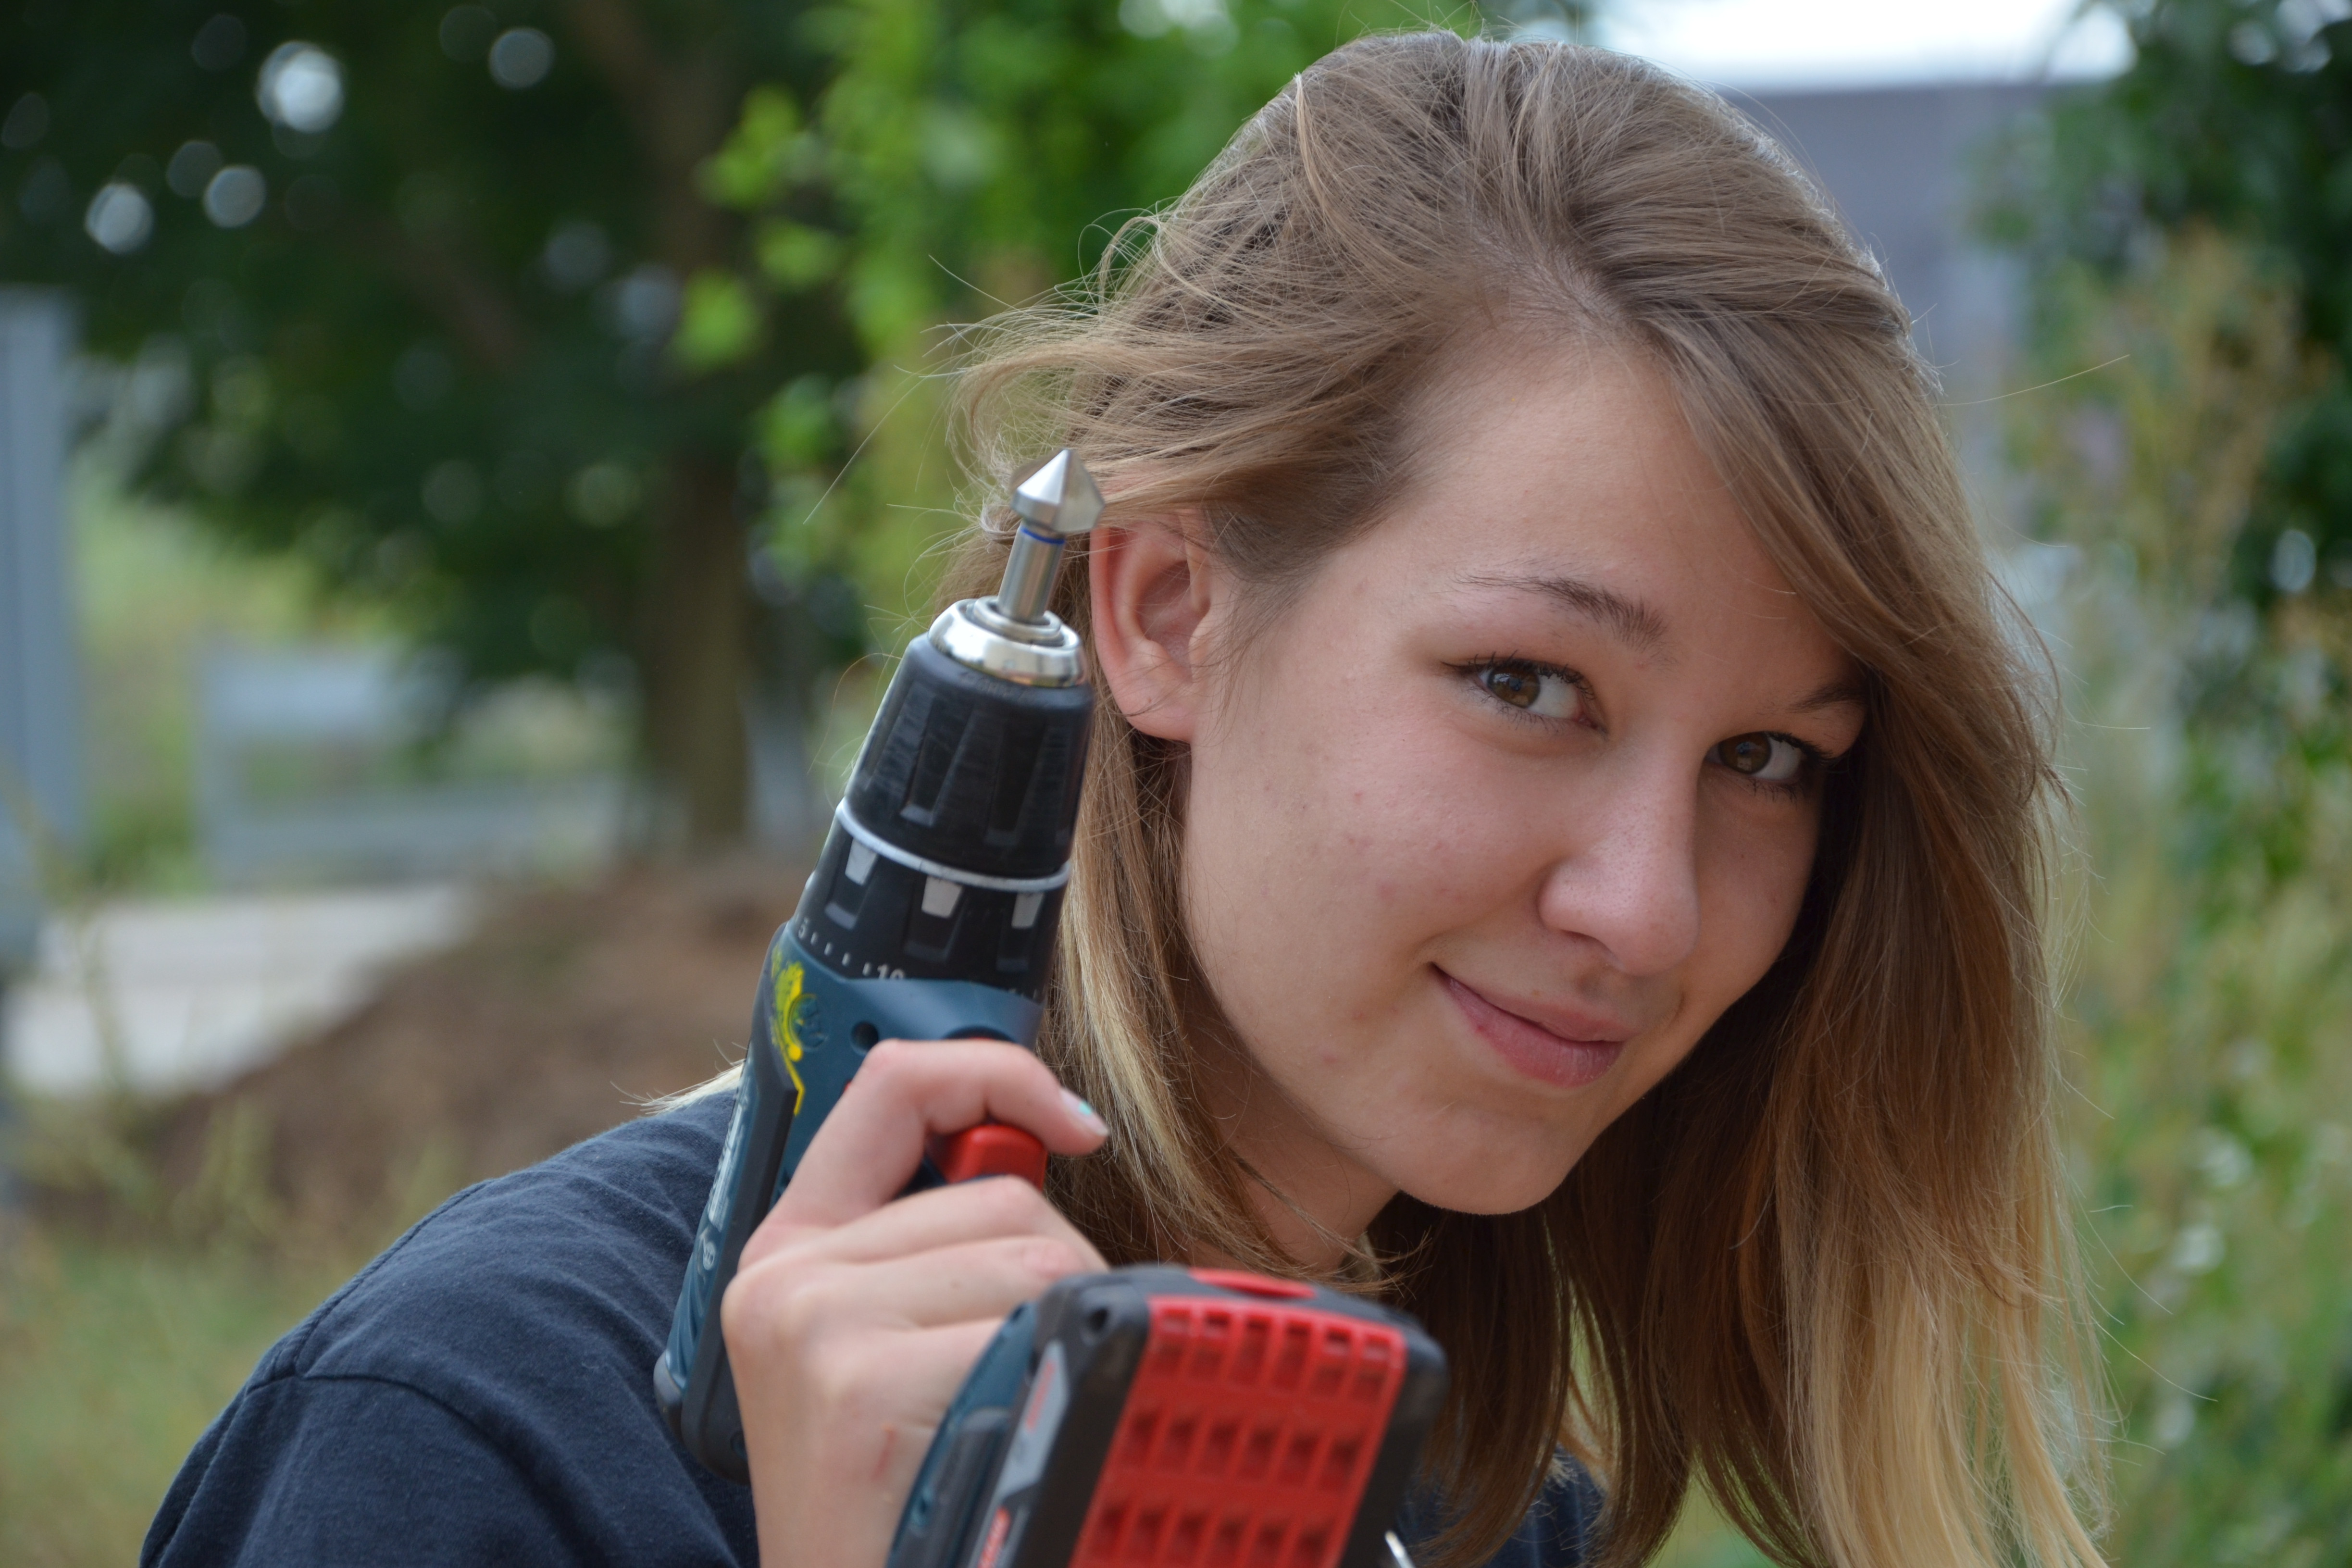 Girl with cordless screwdriver in her hand